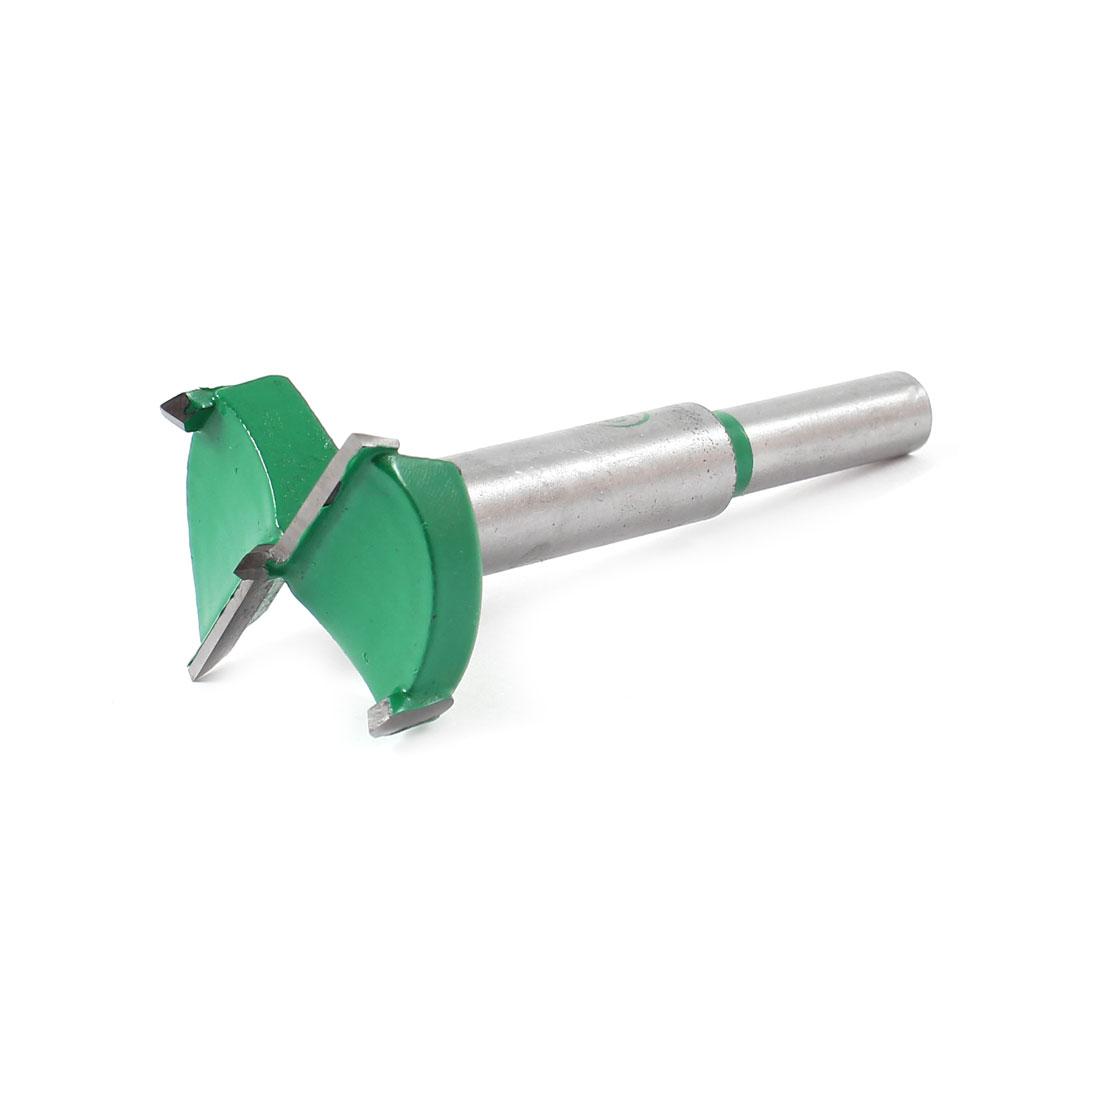 Green Silver Tone Drilling Metal Carbide 35mm Diameter Hinge Boring Bit